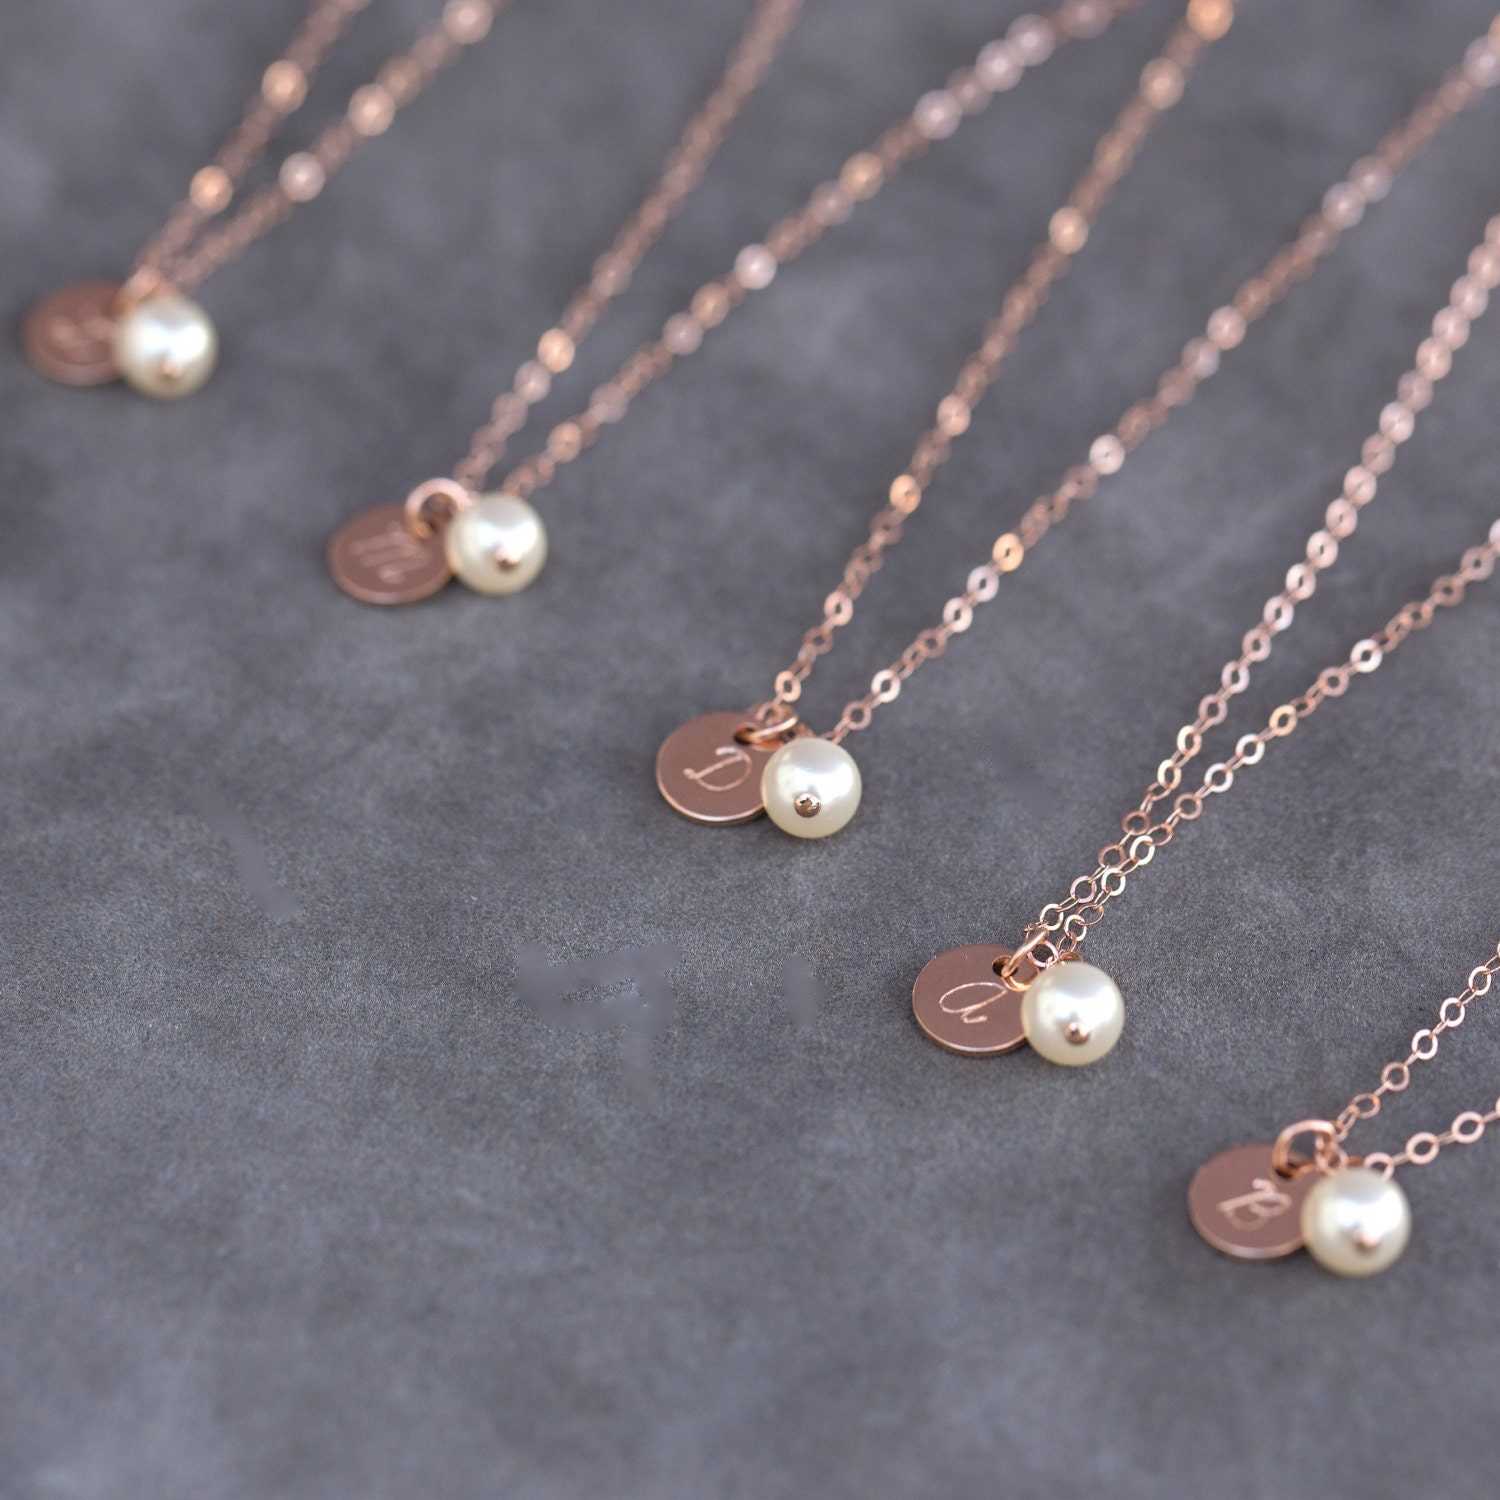 Personalized rose gold necklace pearl and rose gold for Rose gold personalized jewelry